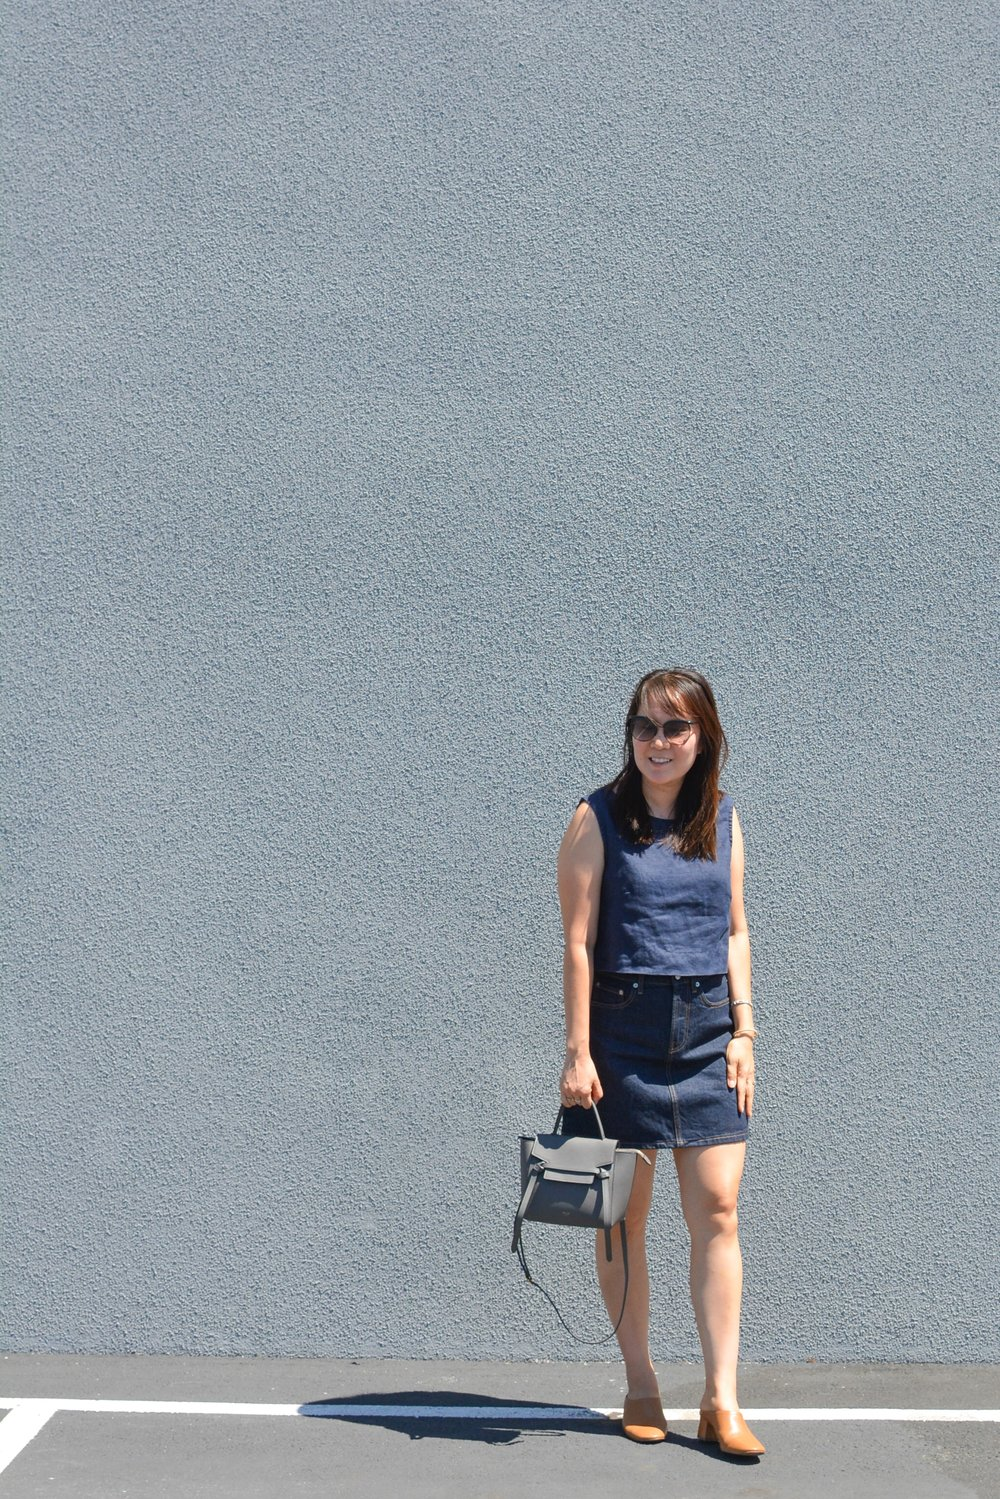 Everlane Review The Denim Skirt (1 of 3)-min.jpg